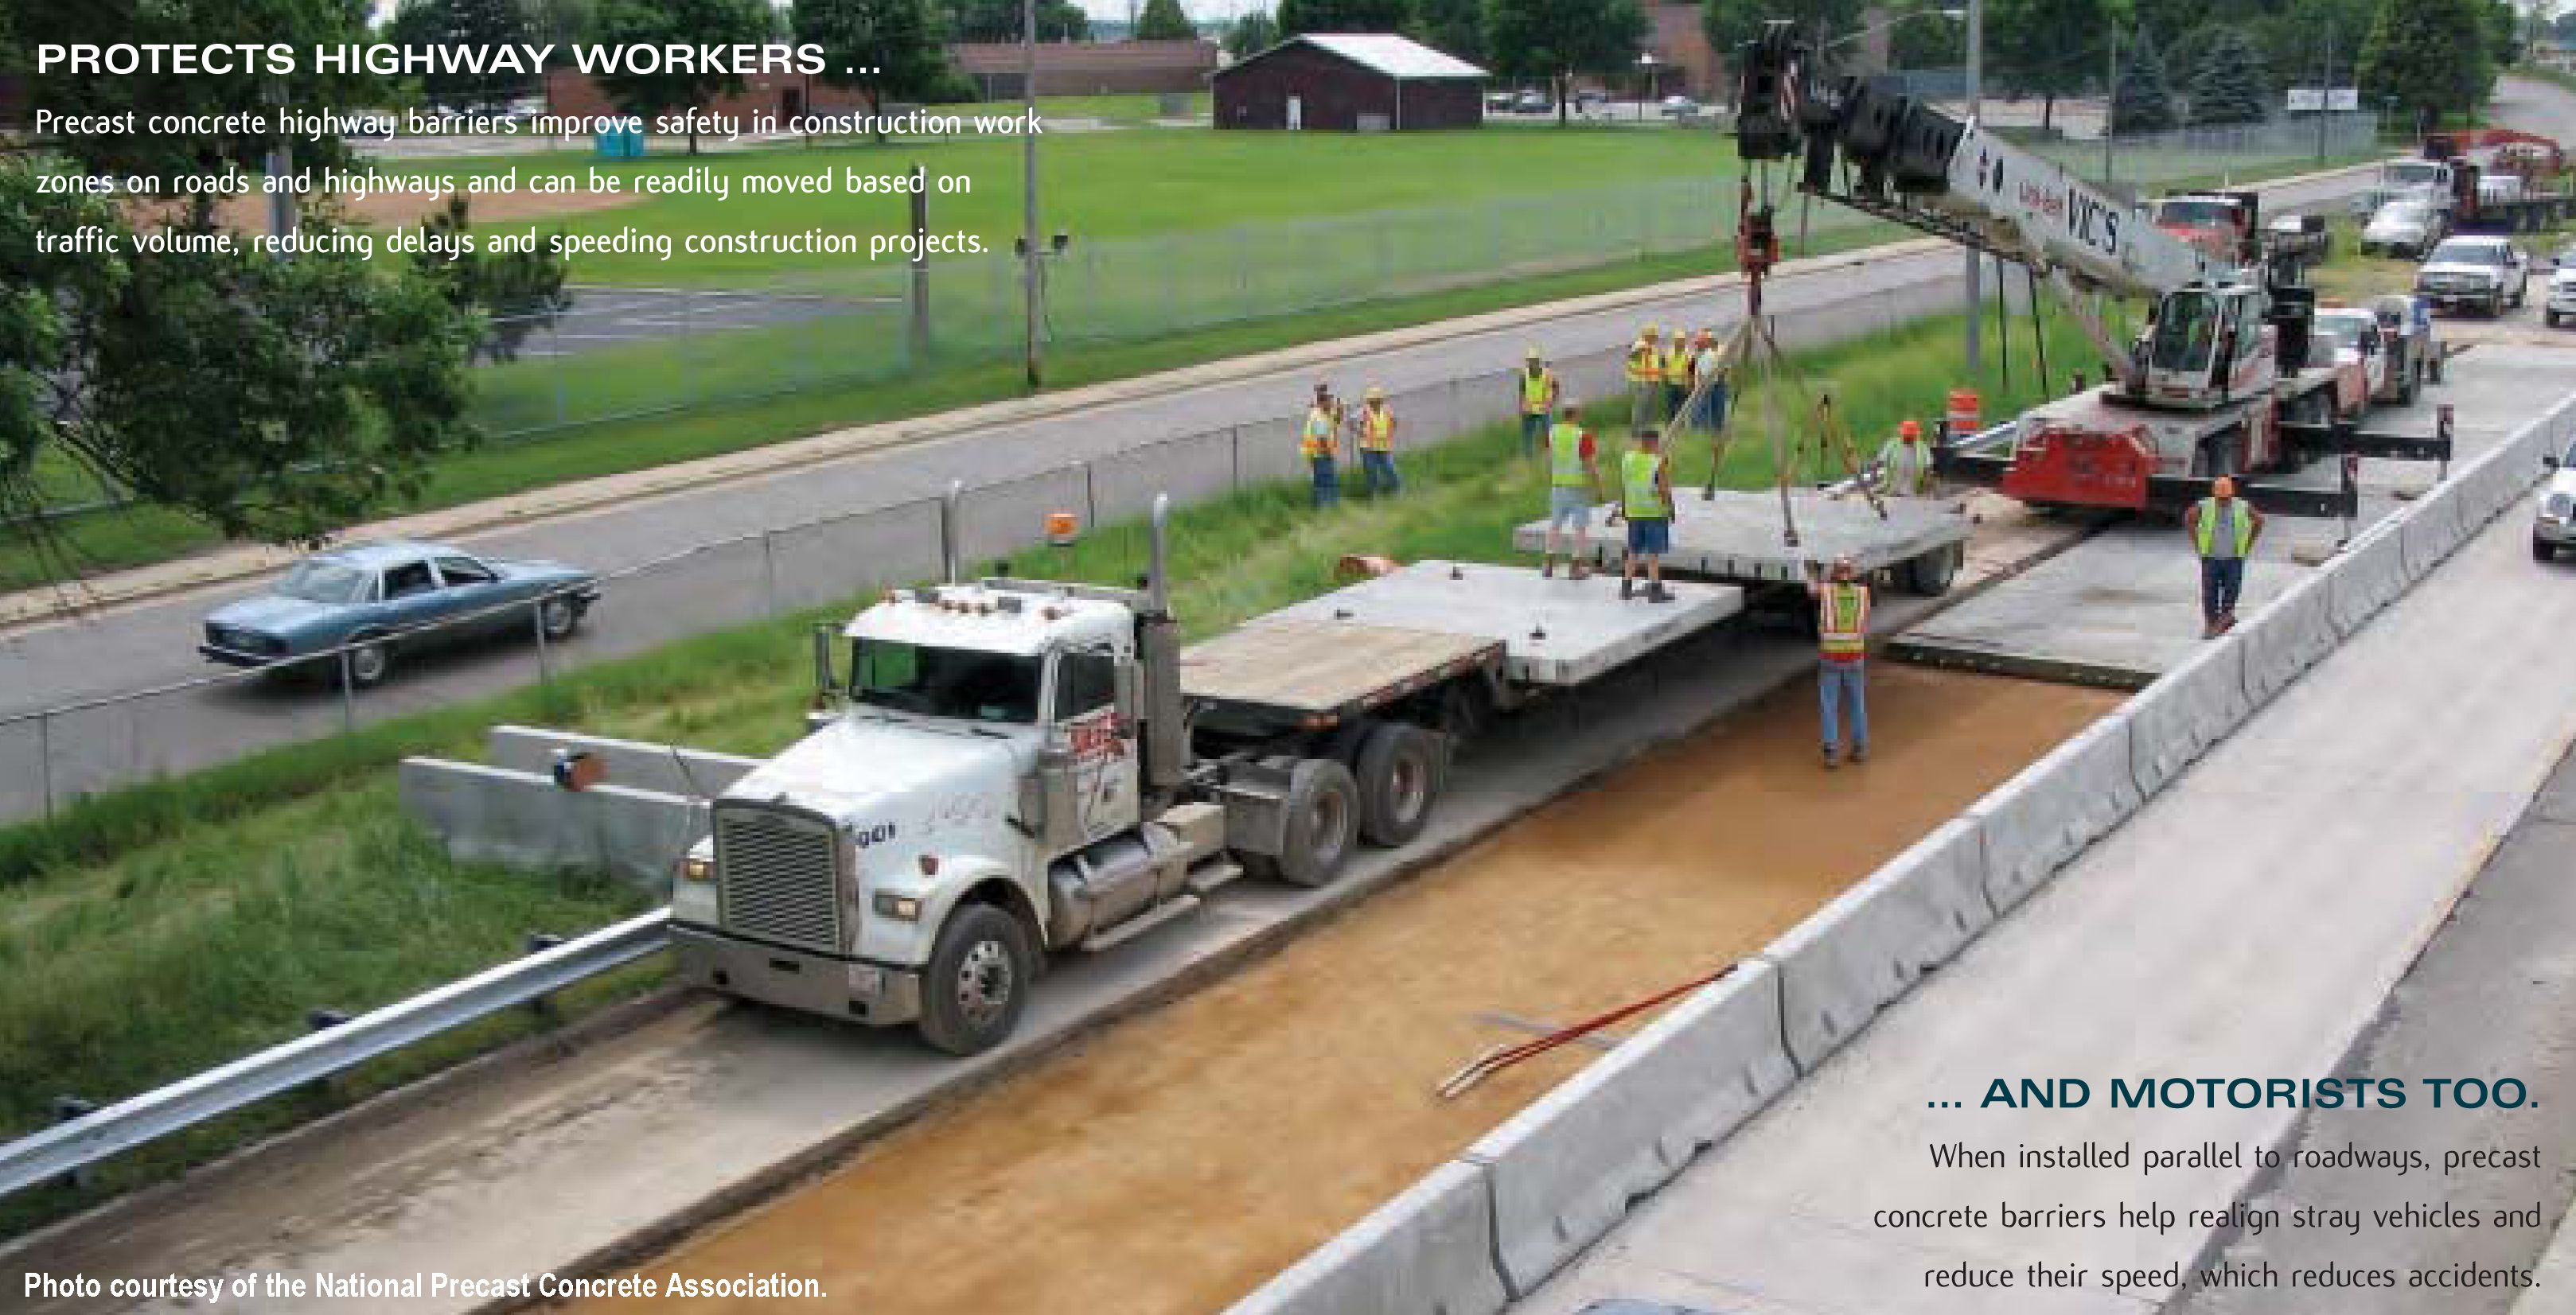 Precast concrete highway barriers improve safety in